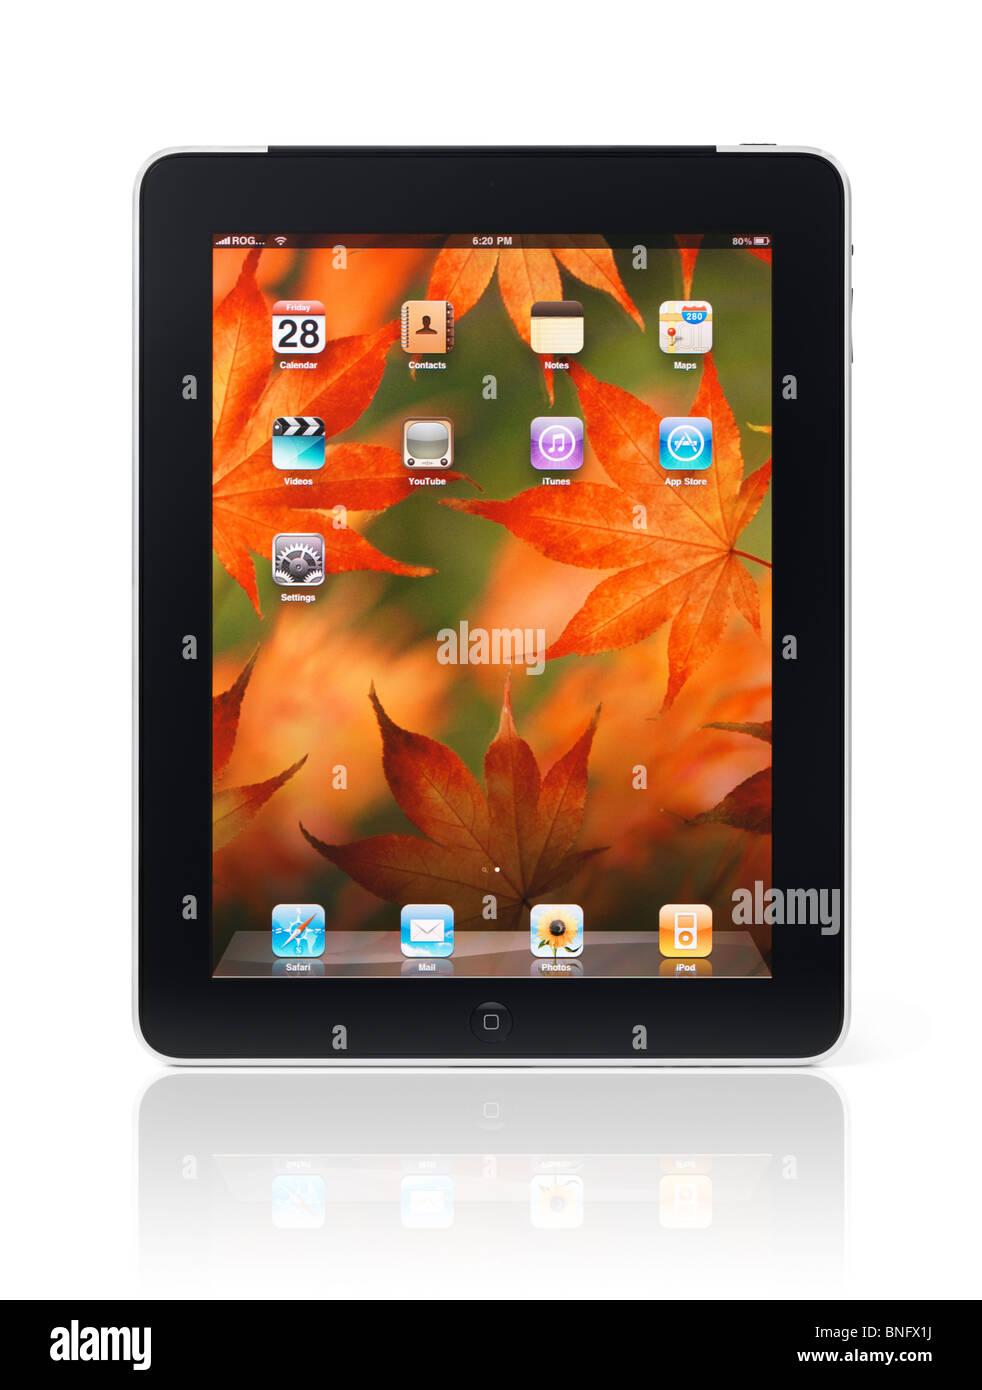 apple ipad 3g tablet with desktop icons and autumn theme background